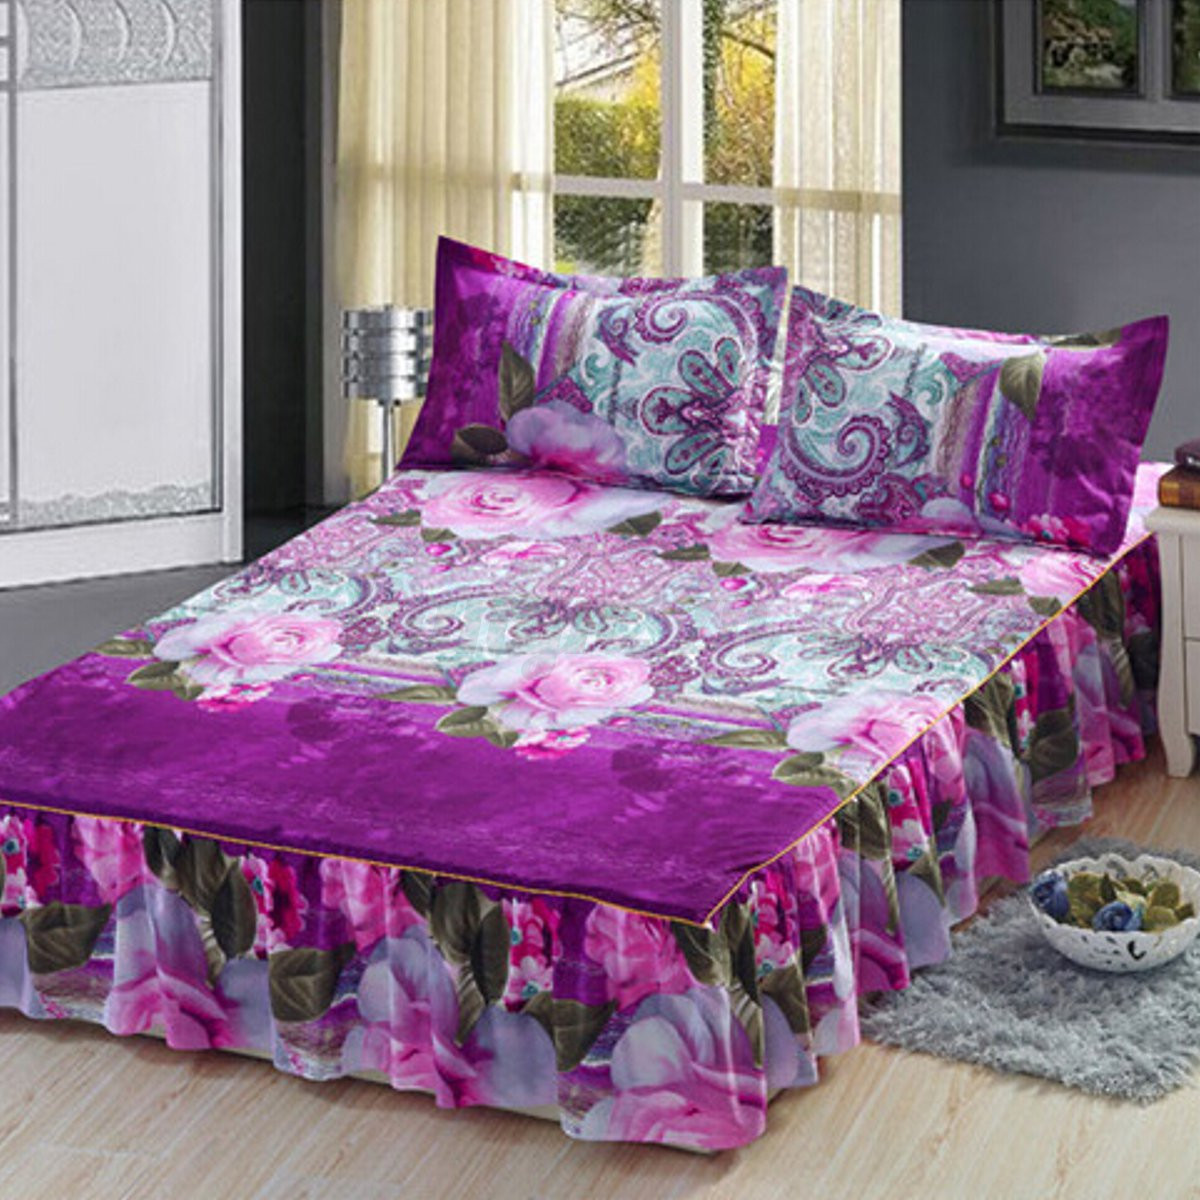 4pcs parure de lit 3d fleur housse couette drap couverture. Black Bedroom Furniture Sets. Home Design Ideas